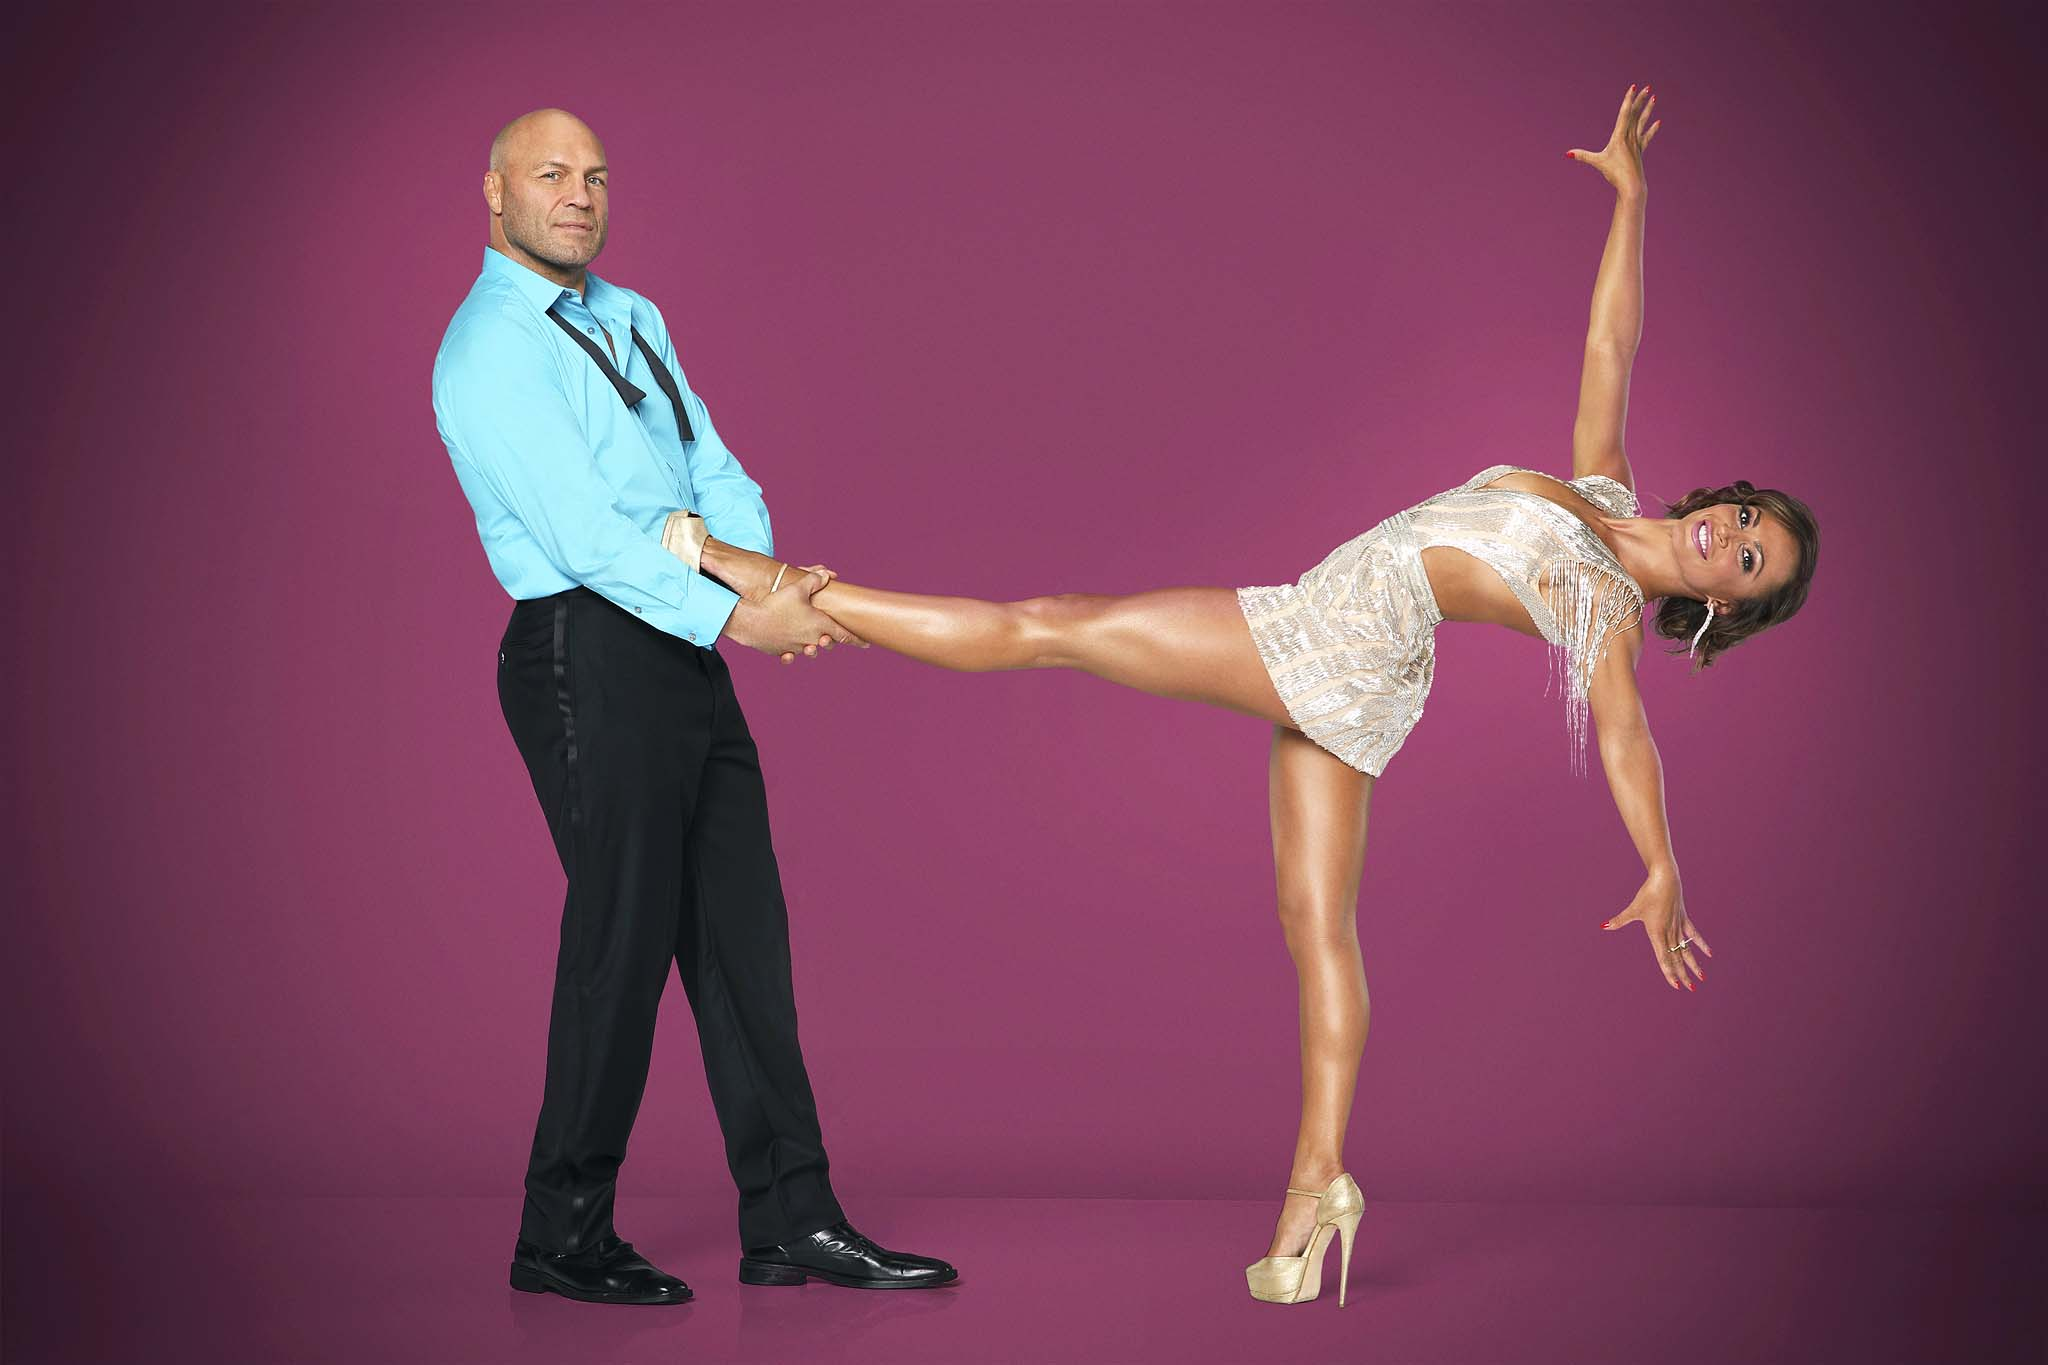 DWTS-S19-Randy-Couture2.jpg